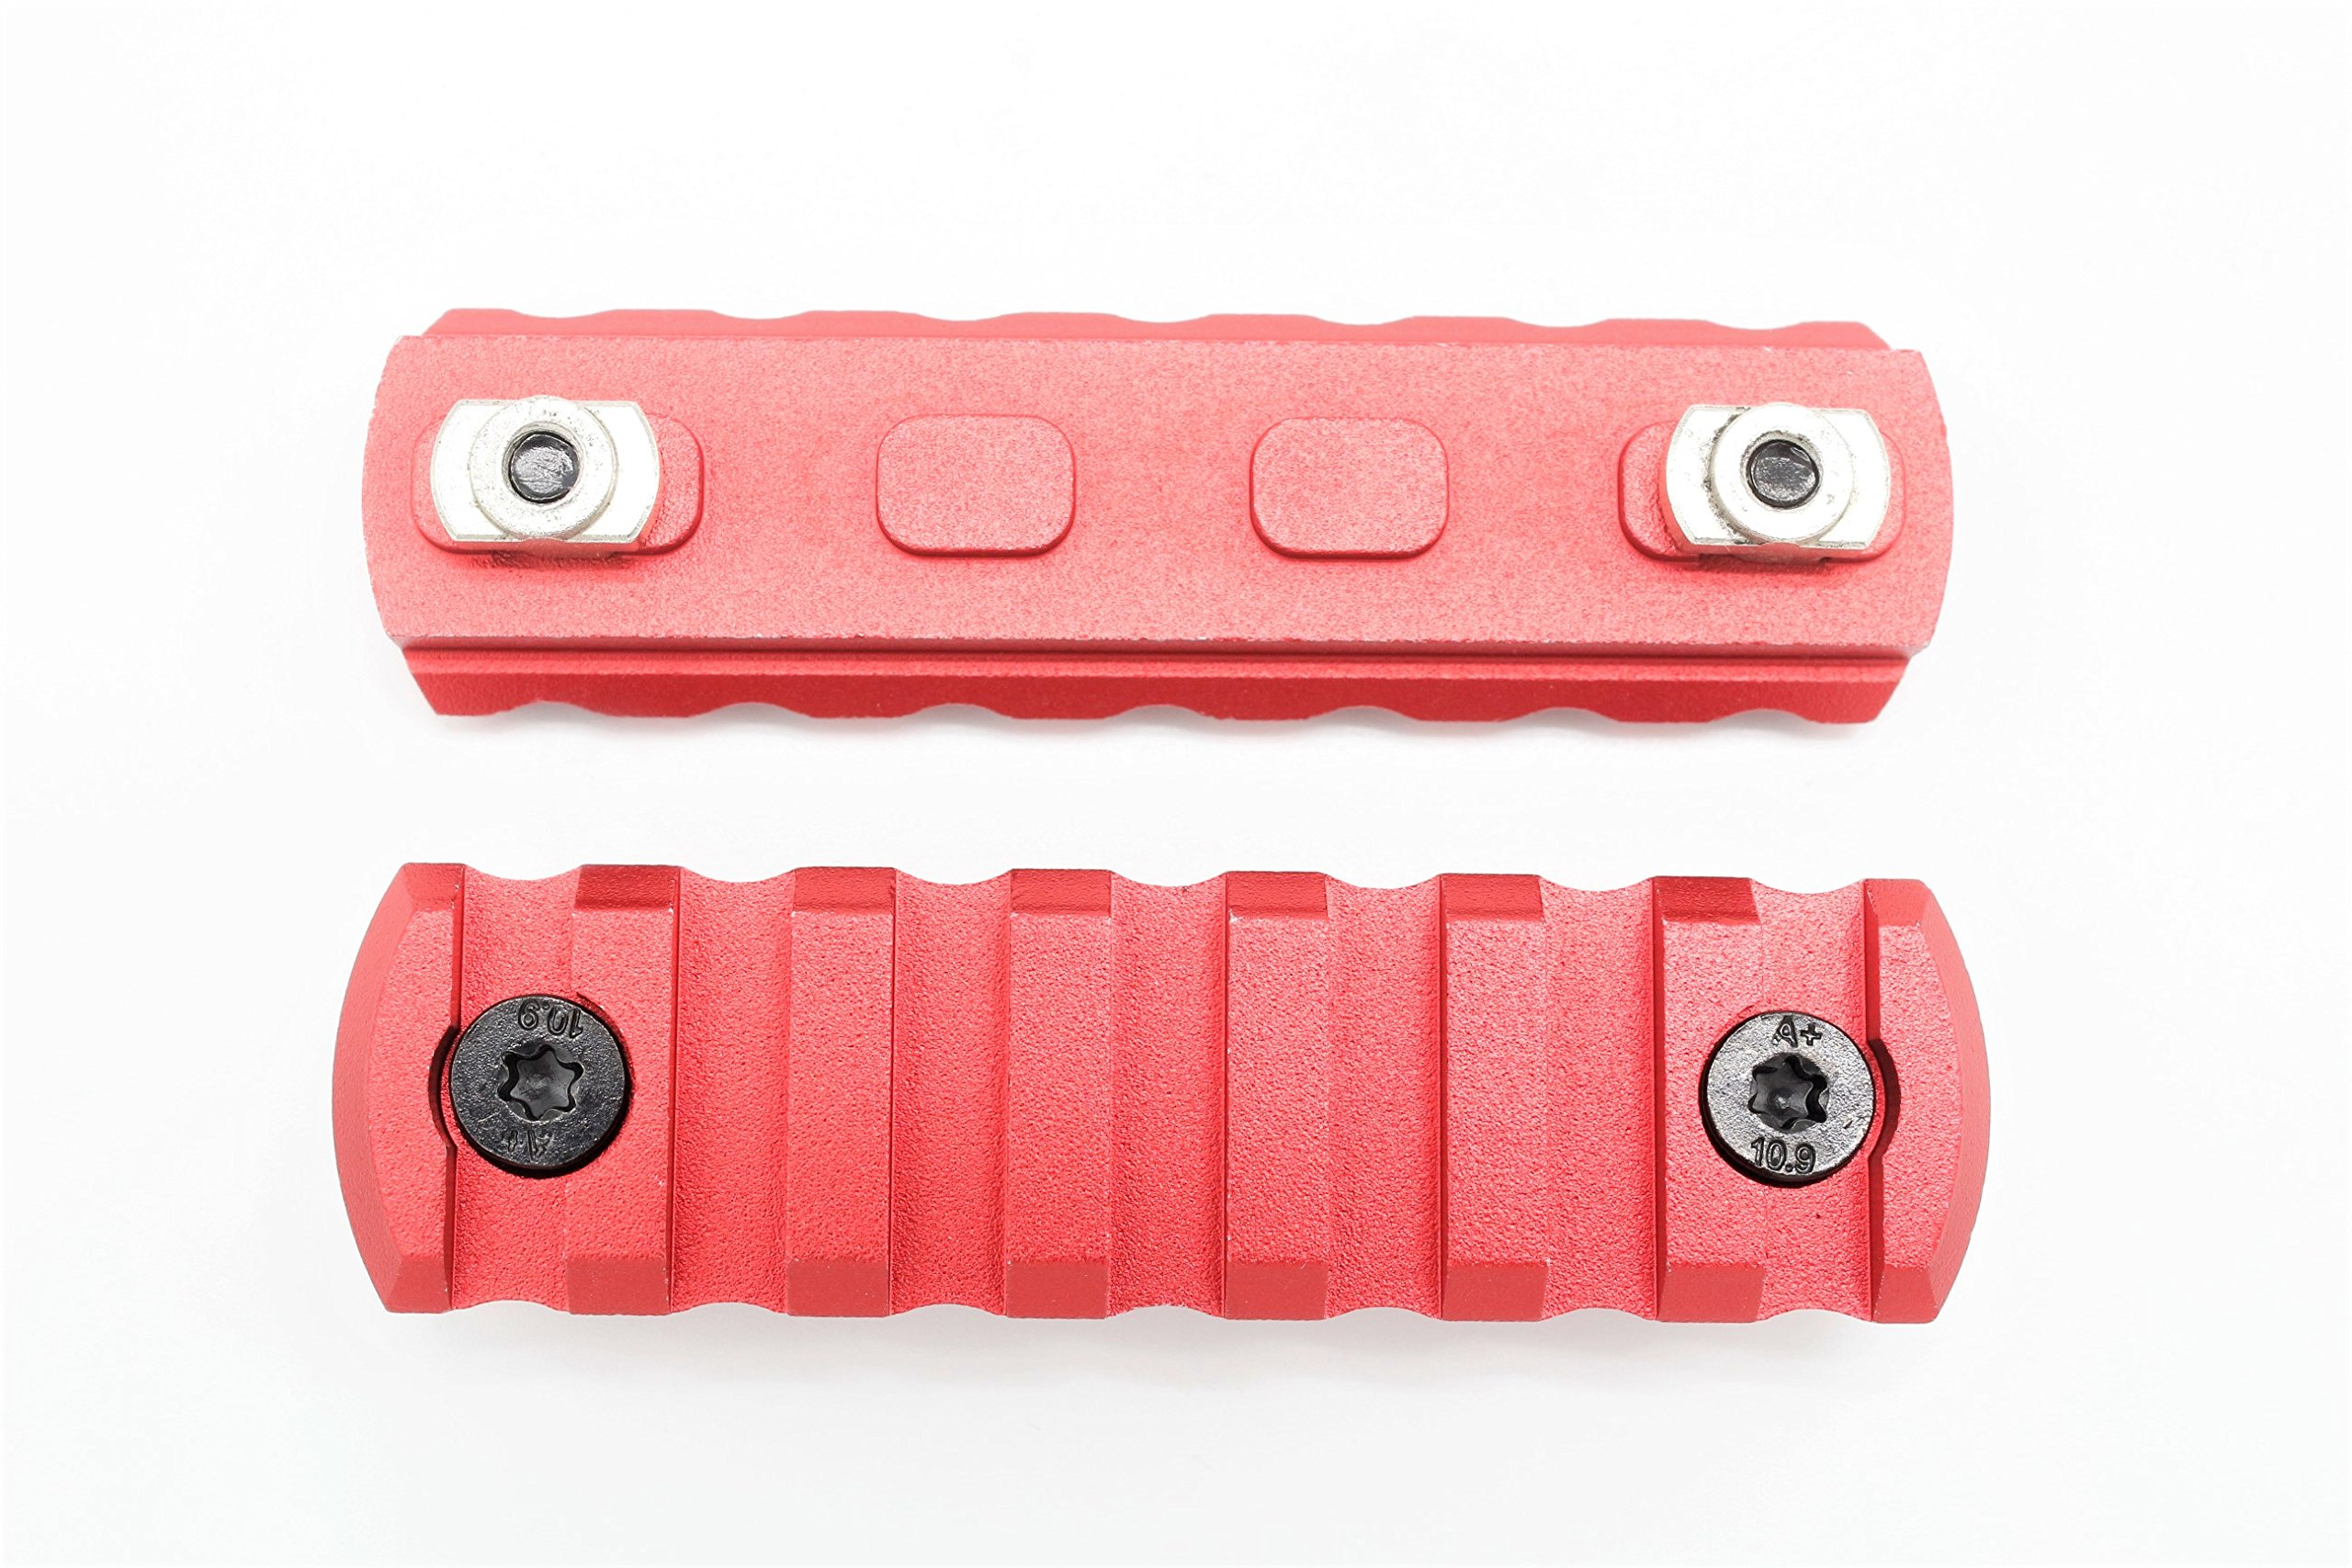 7 Slots M-lok Picatinny/Weaver Rail Sections Red Anodized for M-lok Handguard System by Active-8